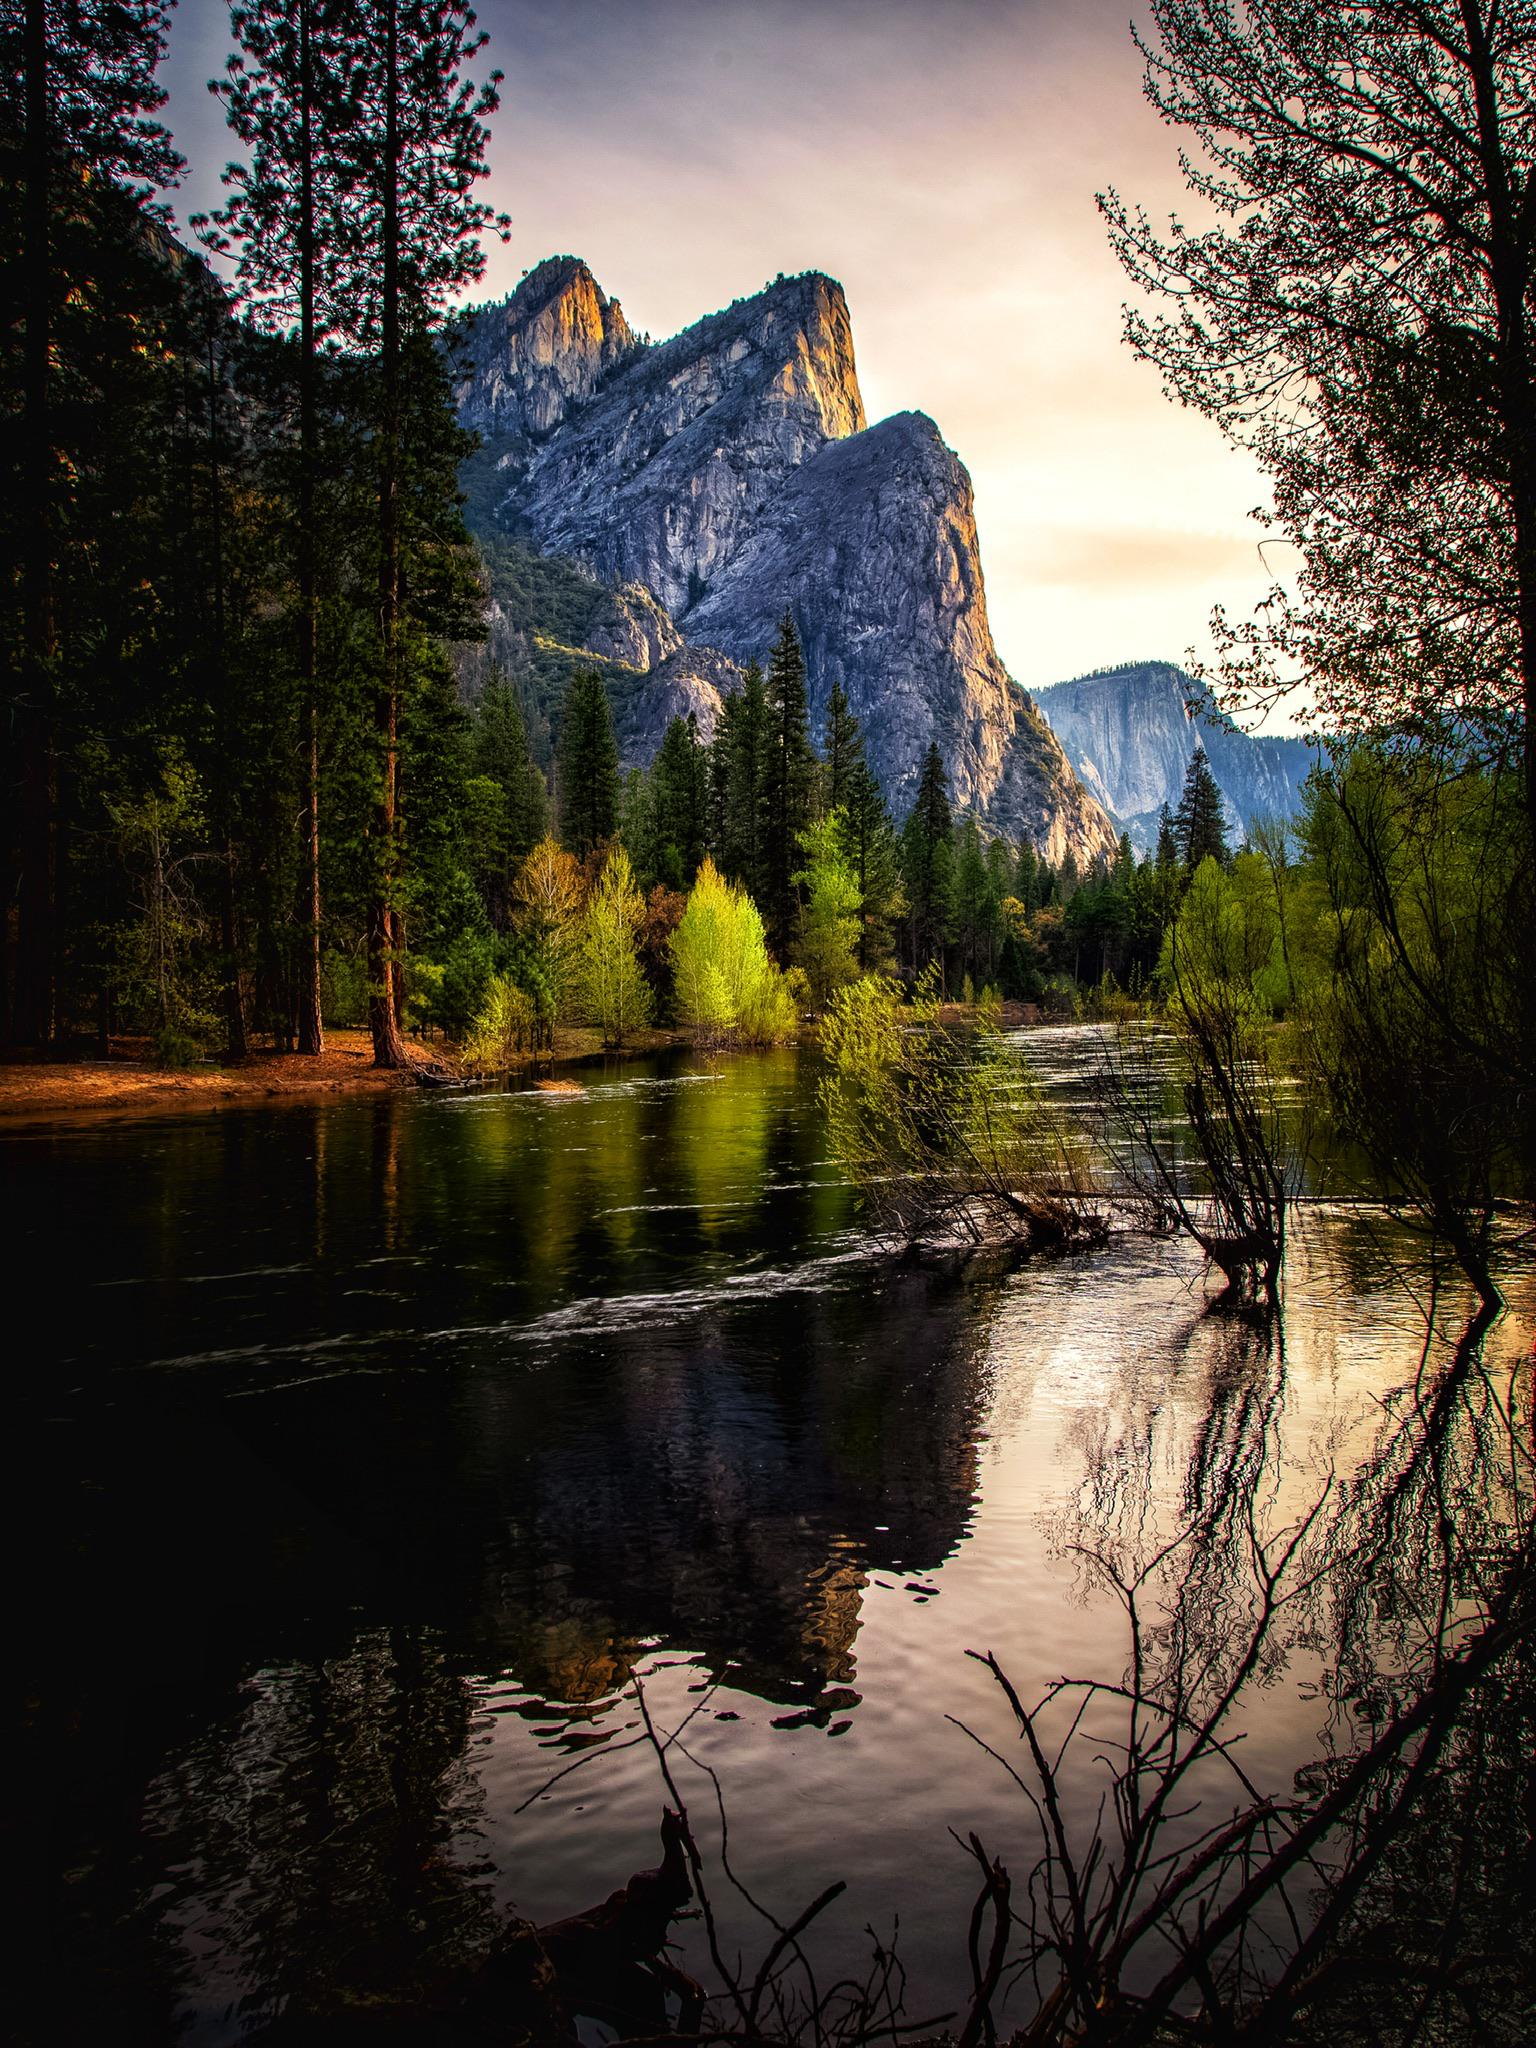 Picture perfect, three brothers, Yosemite National Park